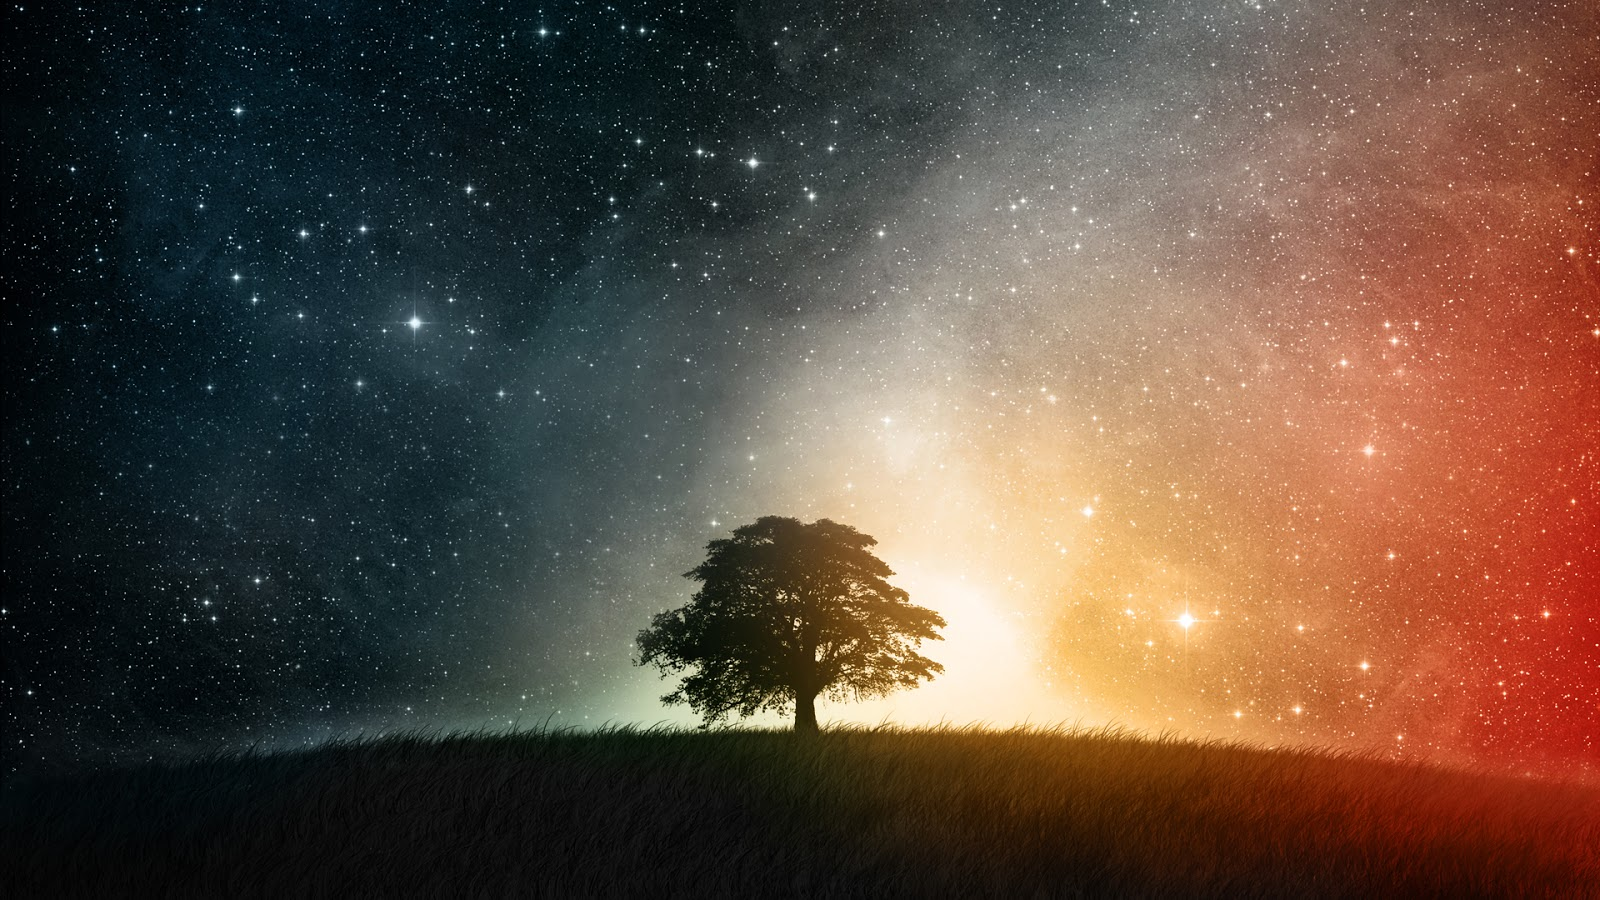 Hd Wallpapers Amazing Galaxy Space Backgrounds By: Space Galaxy HD Wallpapers